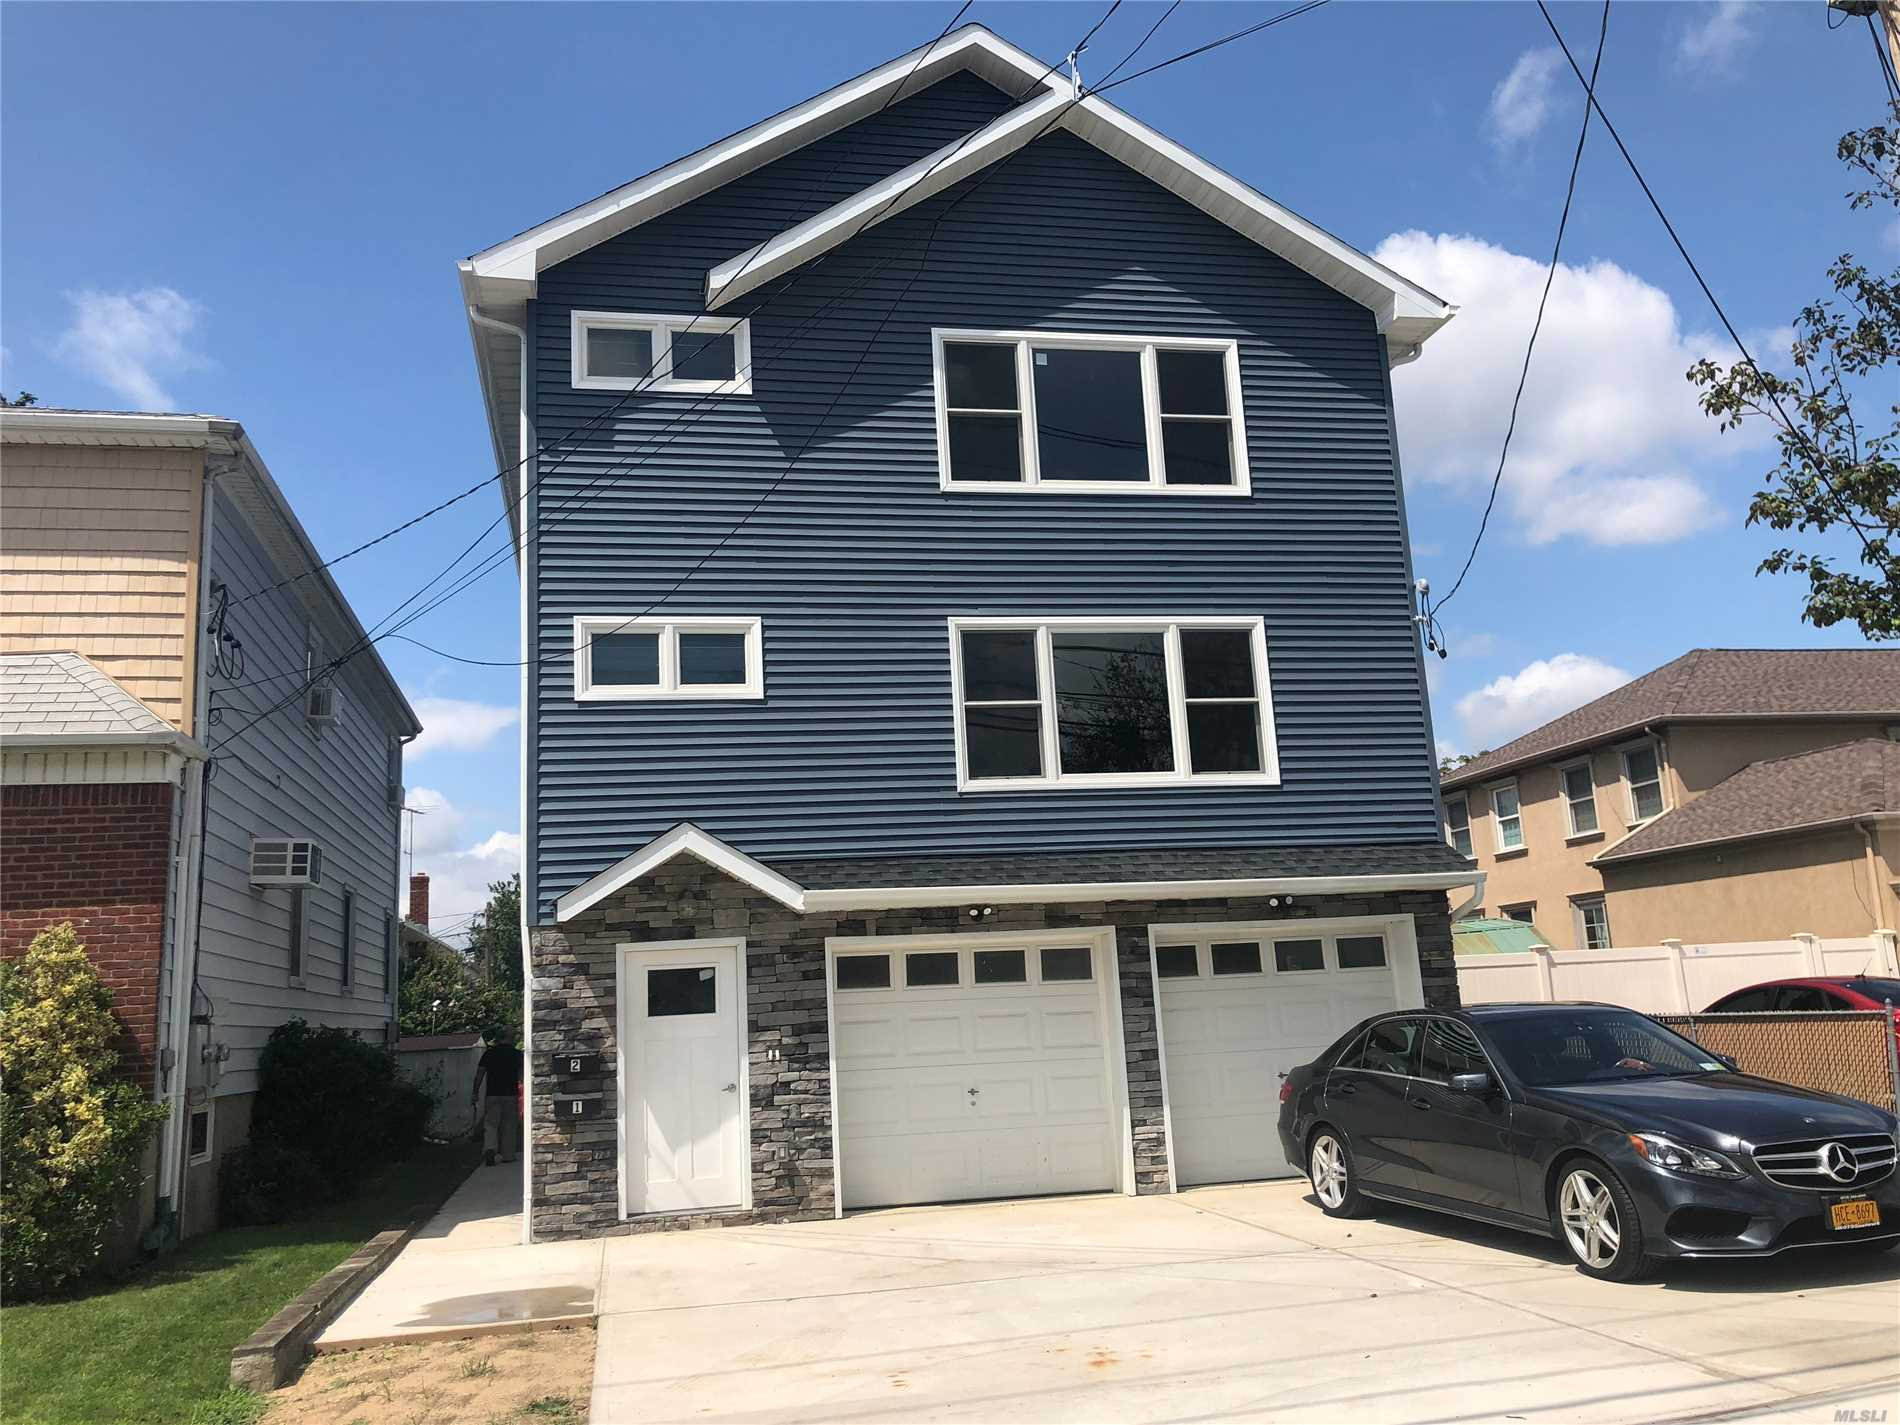 Brand New House!!!! Top Floor Apt In 2 Family Home. Located Close To All.... Shopping, Restaurants And Lirr. Large Master Suite W/Pvt Bath, 2 Additional Bedrooms W/Shared Bath. Wide Open Layout, Eat In Kitchen W/Center Island And New Appliances. Water Views, Private Garage/Driveway. Shared Entryway. Separate Cac, Heat Etc...Upper Apt In A 2 Family Home Brand New!!!!